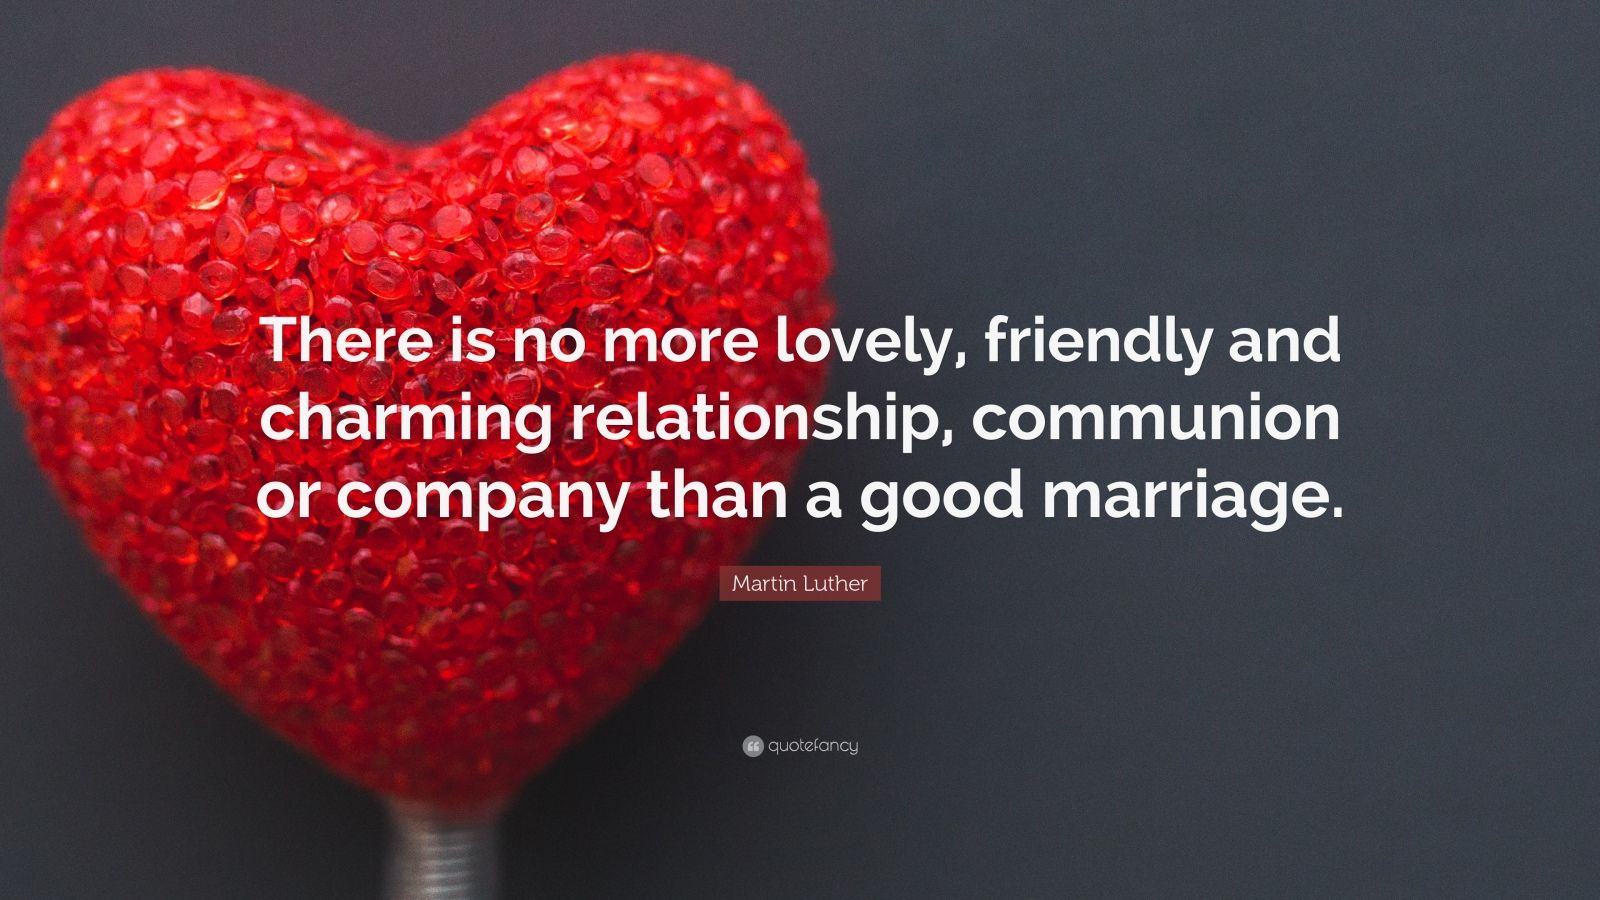 """Marriage Quotes: """"There is no more lovely, friendly and charming relationship, communion or company than a good marriage."""" — Martin Luther"""